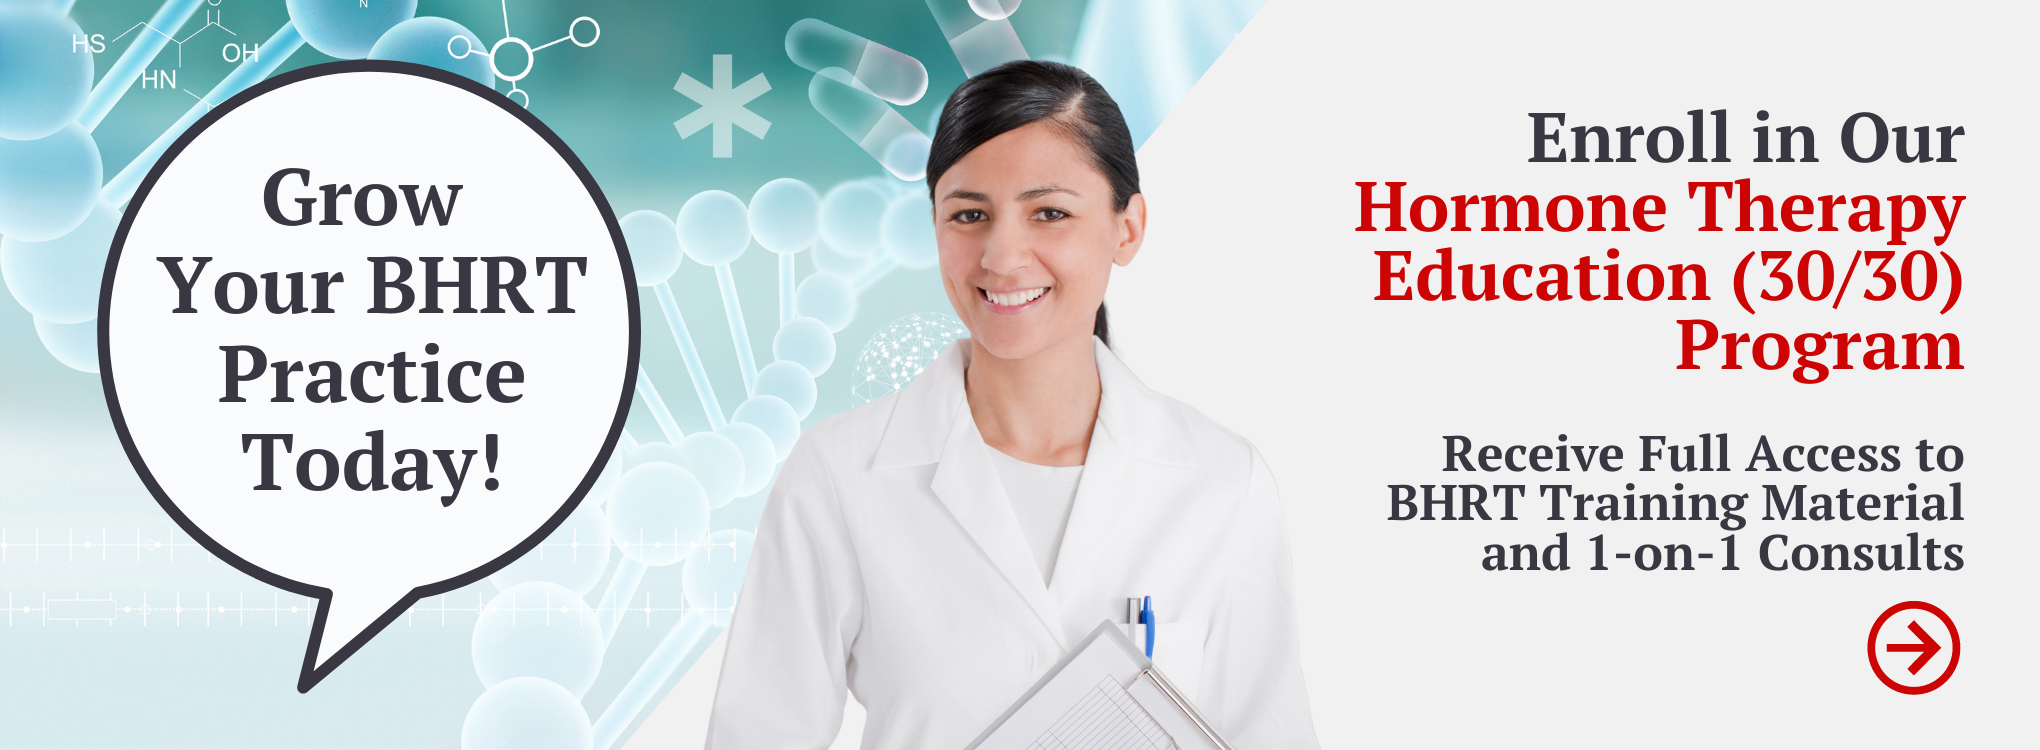 Enroll in our Hormone Therapy Education (30/30) Program